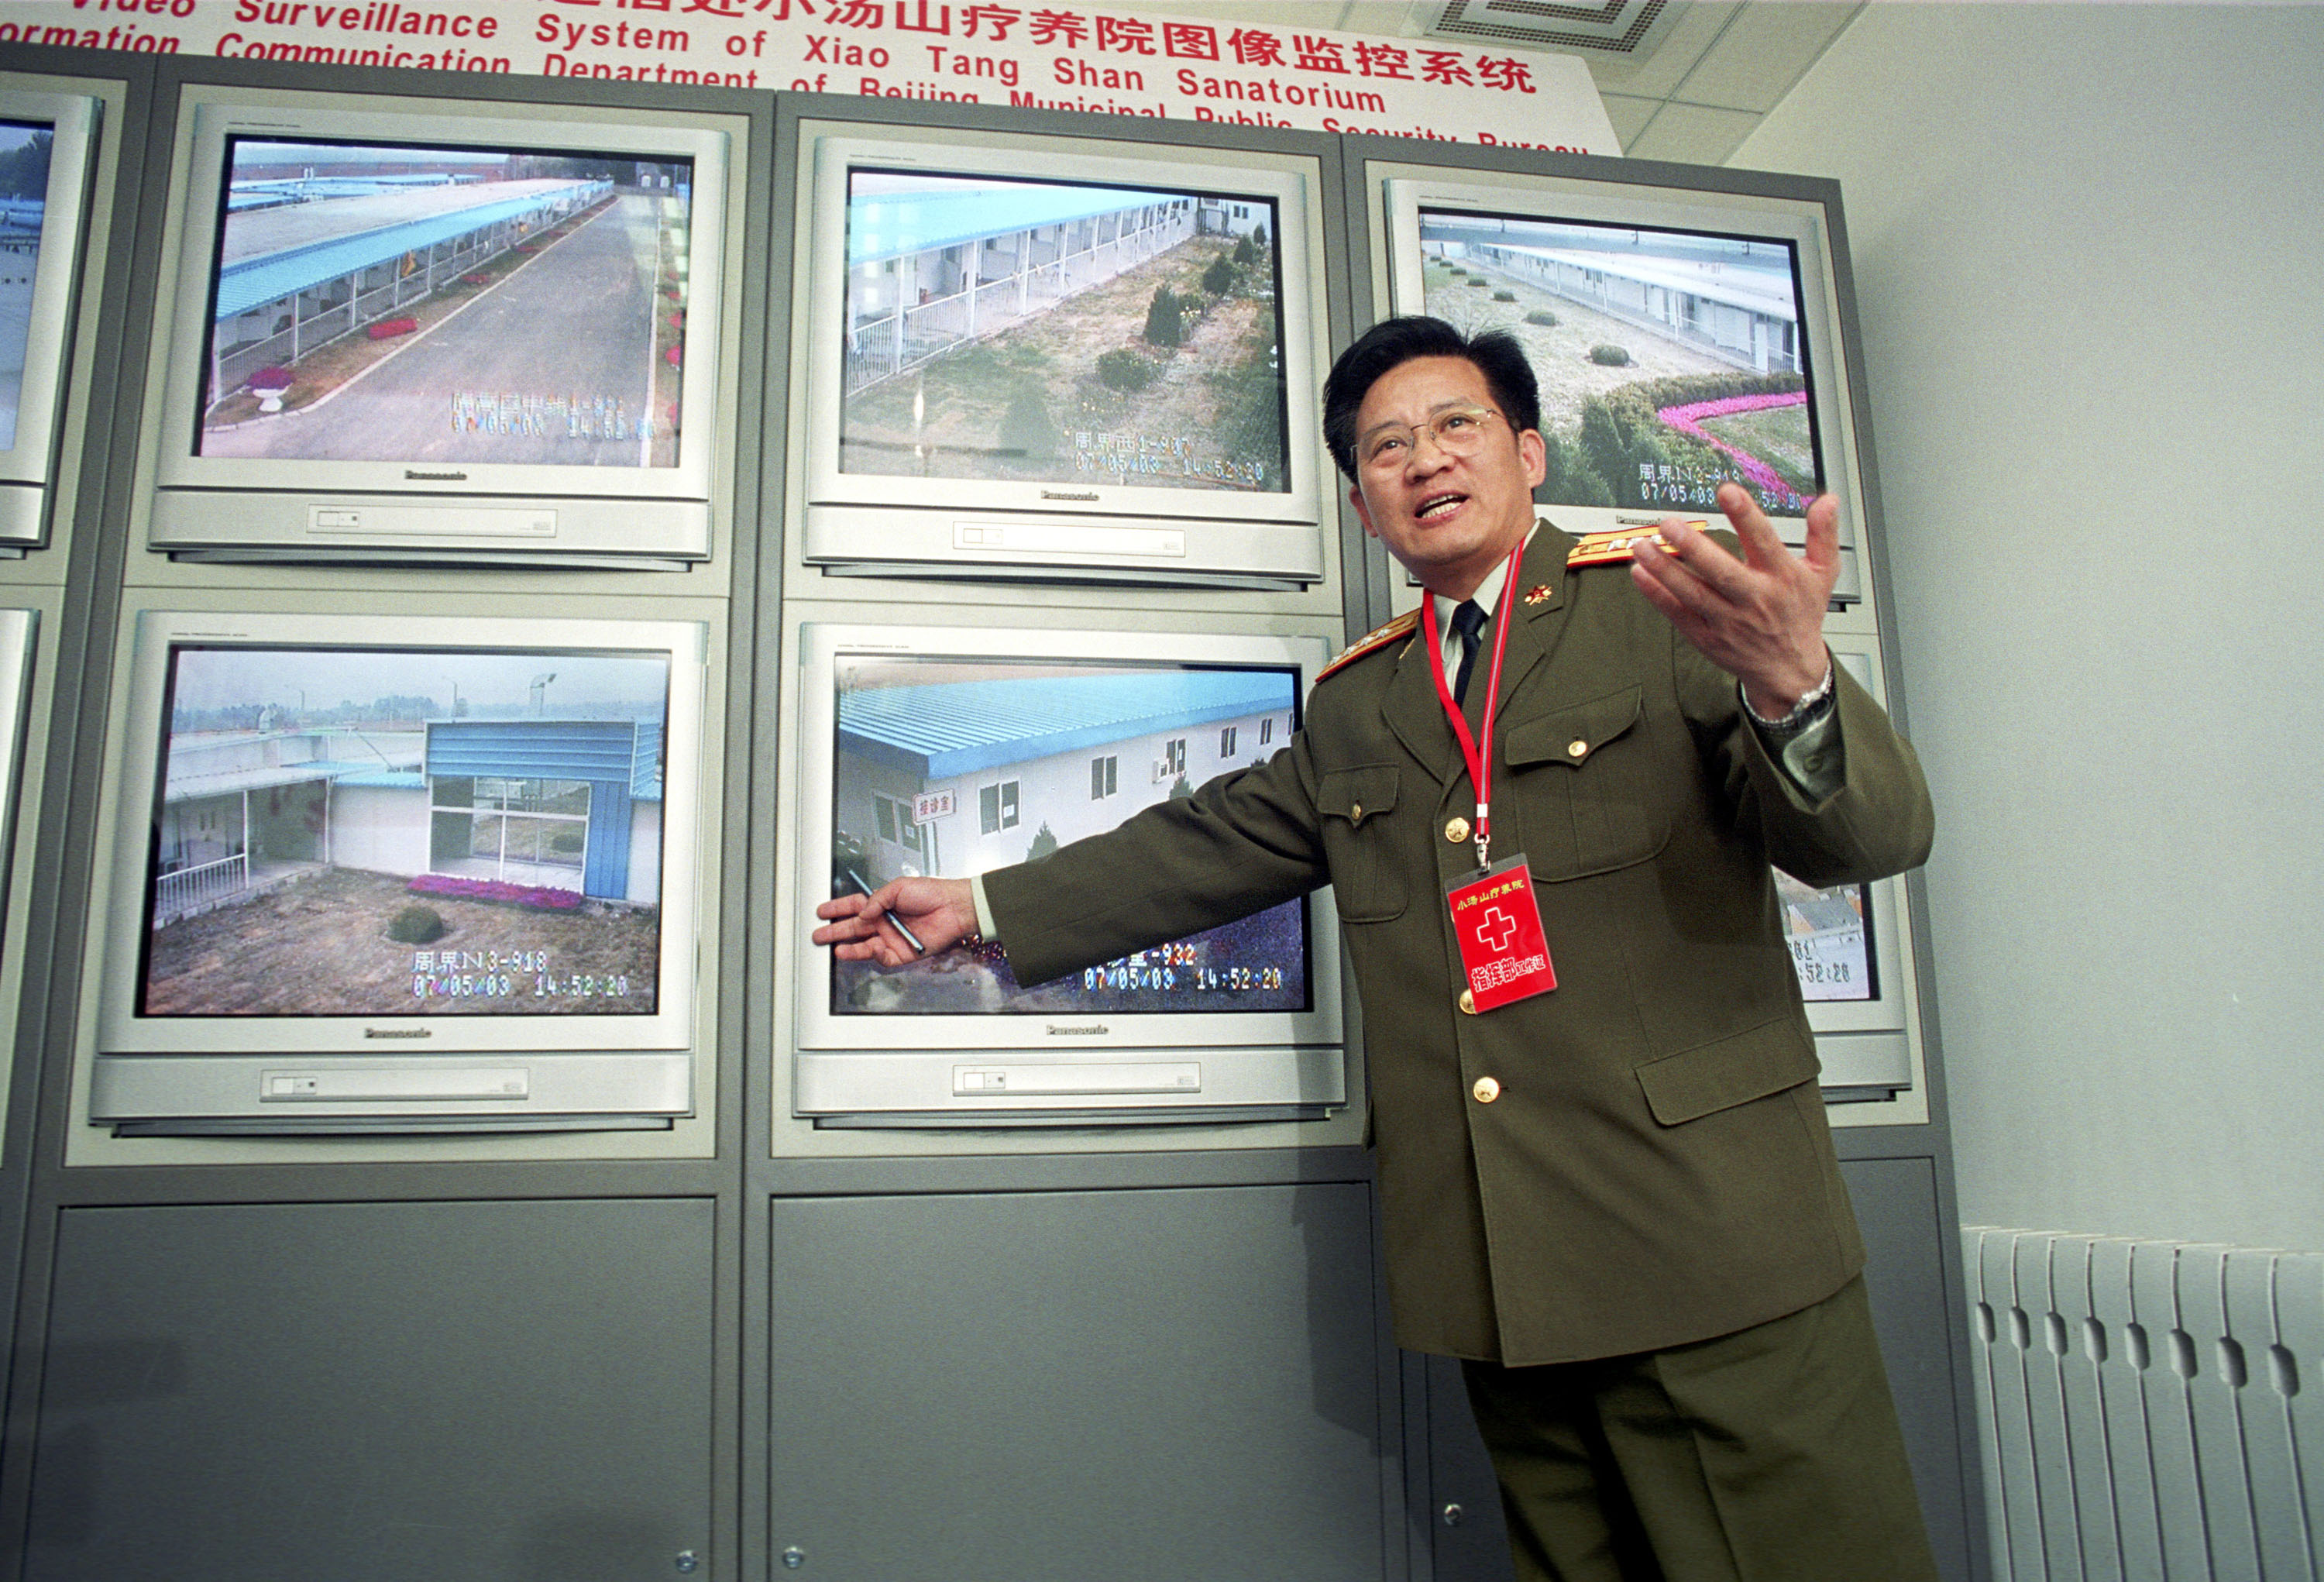 A military official explains the surveillance system of a newly built 1,000 bed SARS hospital to journalists on May 7, 2003 in Xiaotangshan, near Beijing, China.